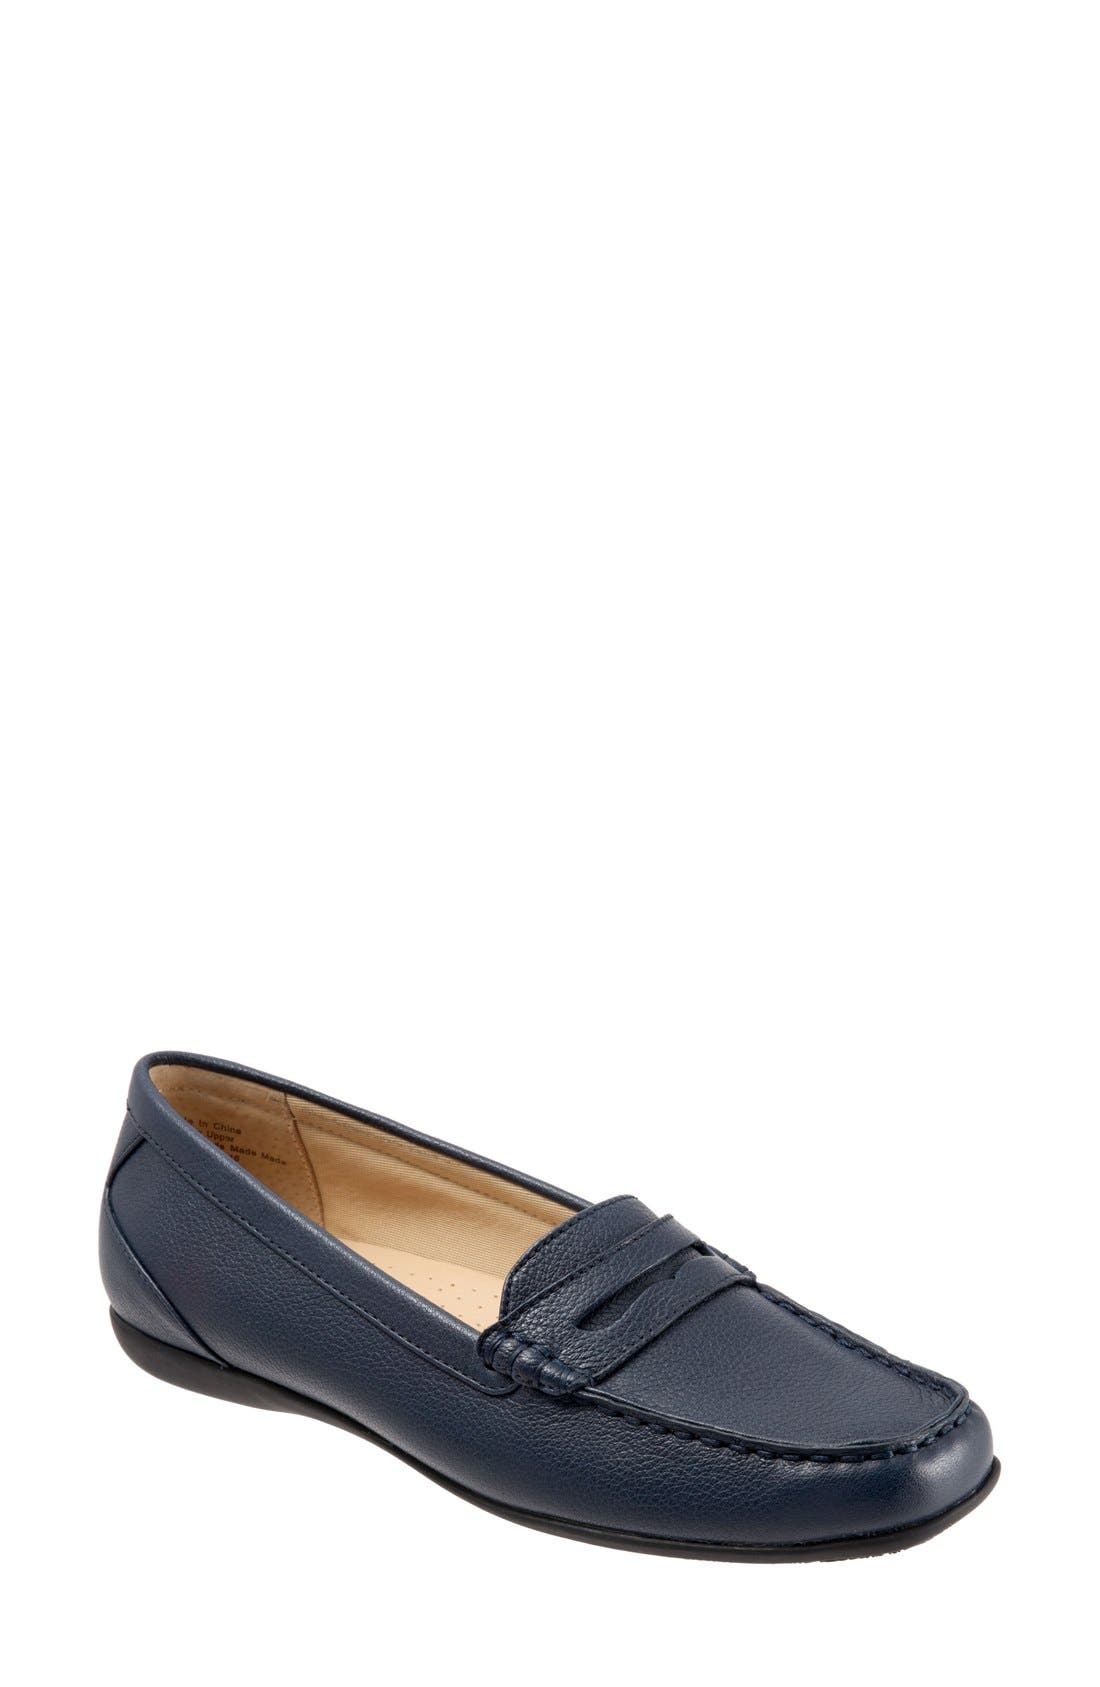 Main Image - Trotters 'Staci' Penny Loafer (Women)